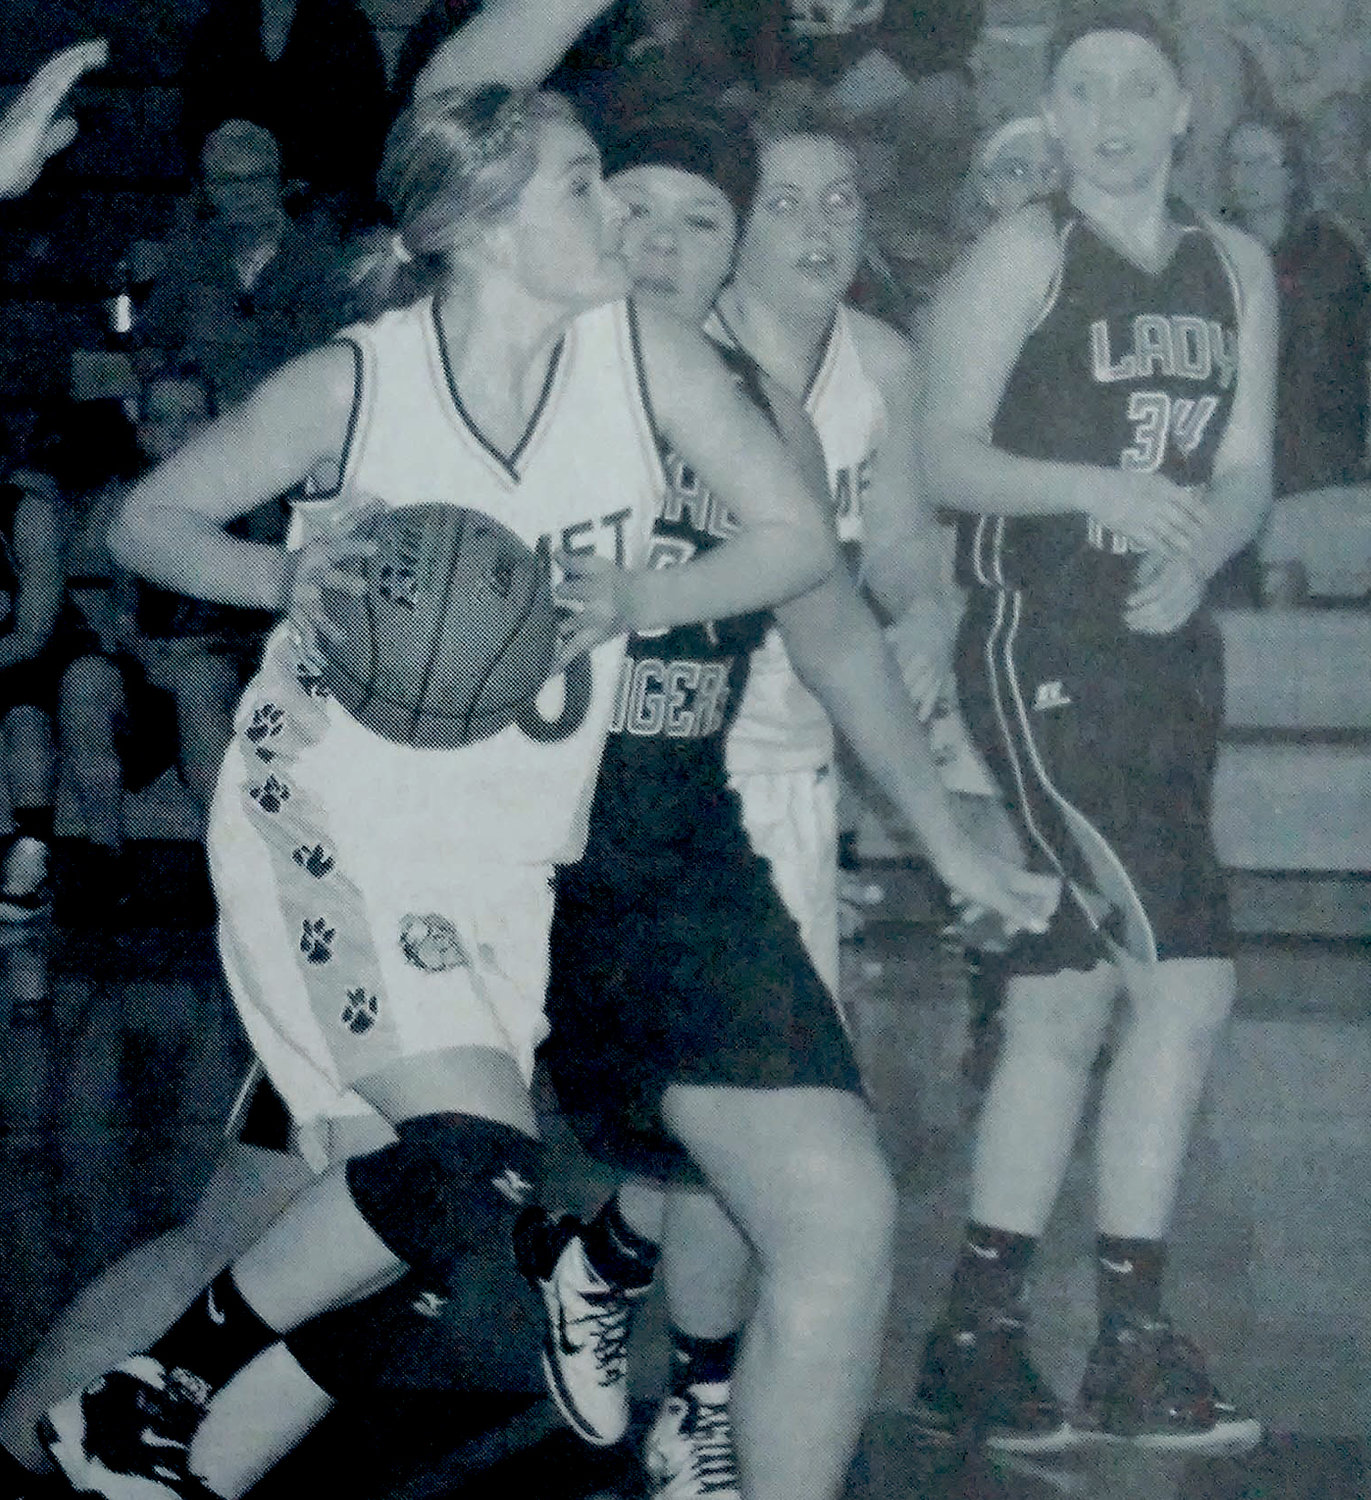 TEN YEARS AGO: The Lady Bulldogs soundly defeated the Howard Tigers Jan. 11 with a final score of 80-28. Grayson Gruenhagen steals the ball and flies by the Lady Tigers to make another shot. Gruenhagen was one of the top scorers for De Smet with 10 points.